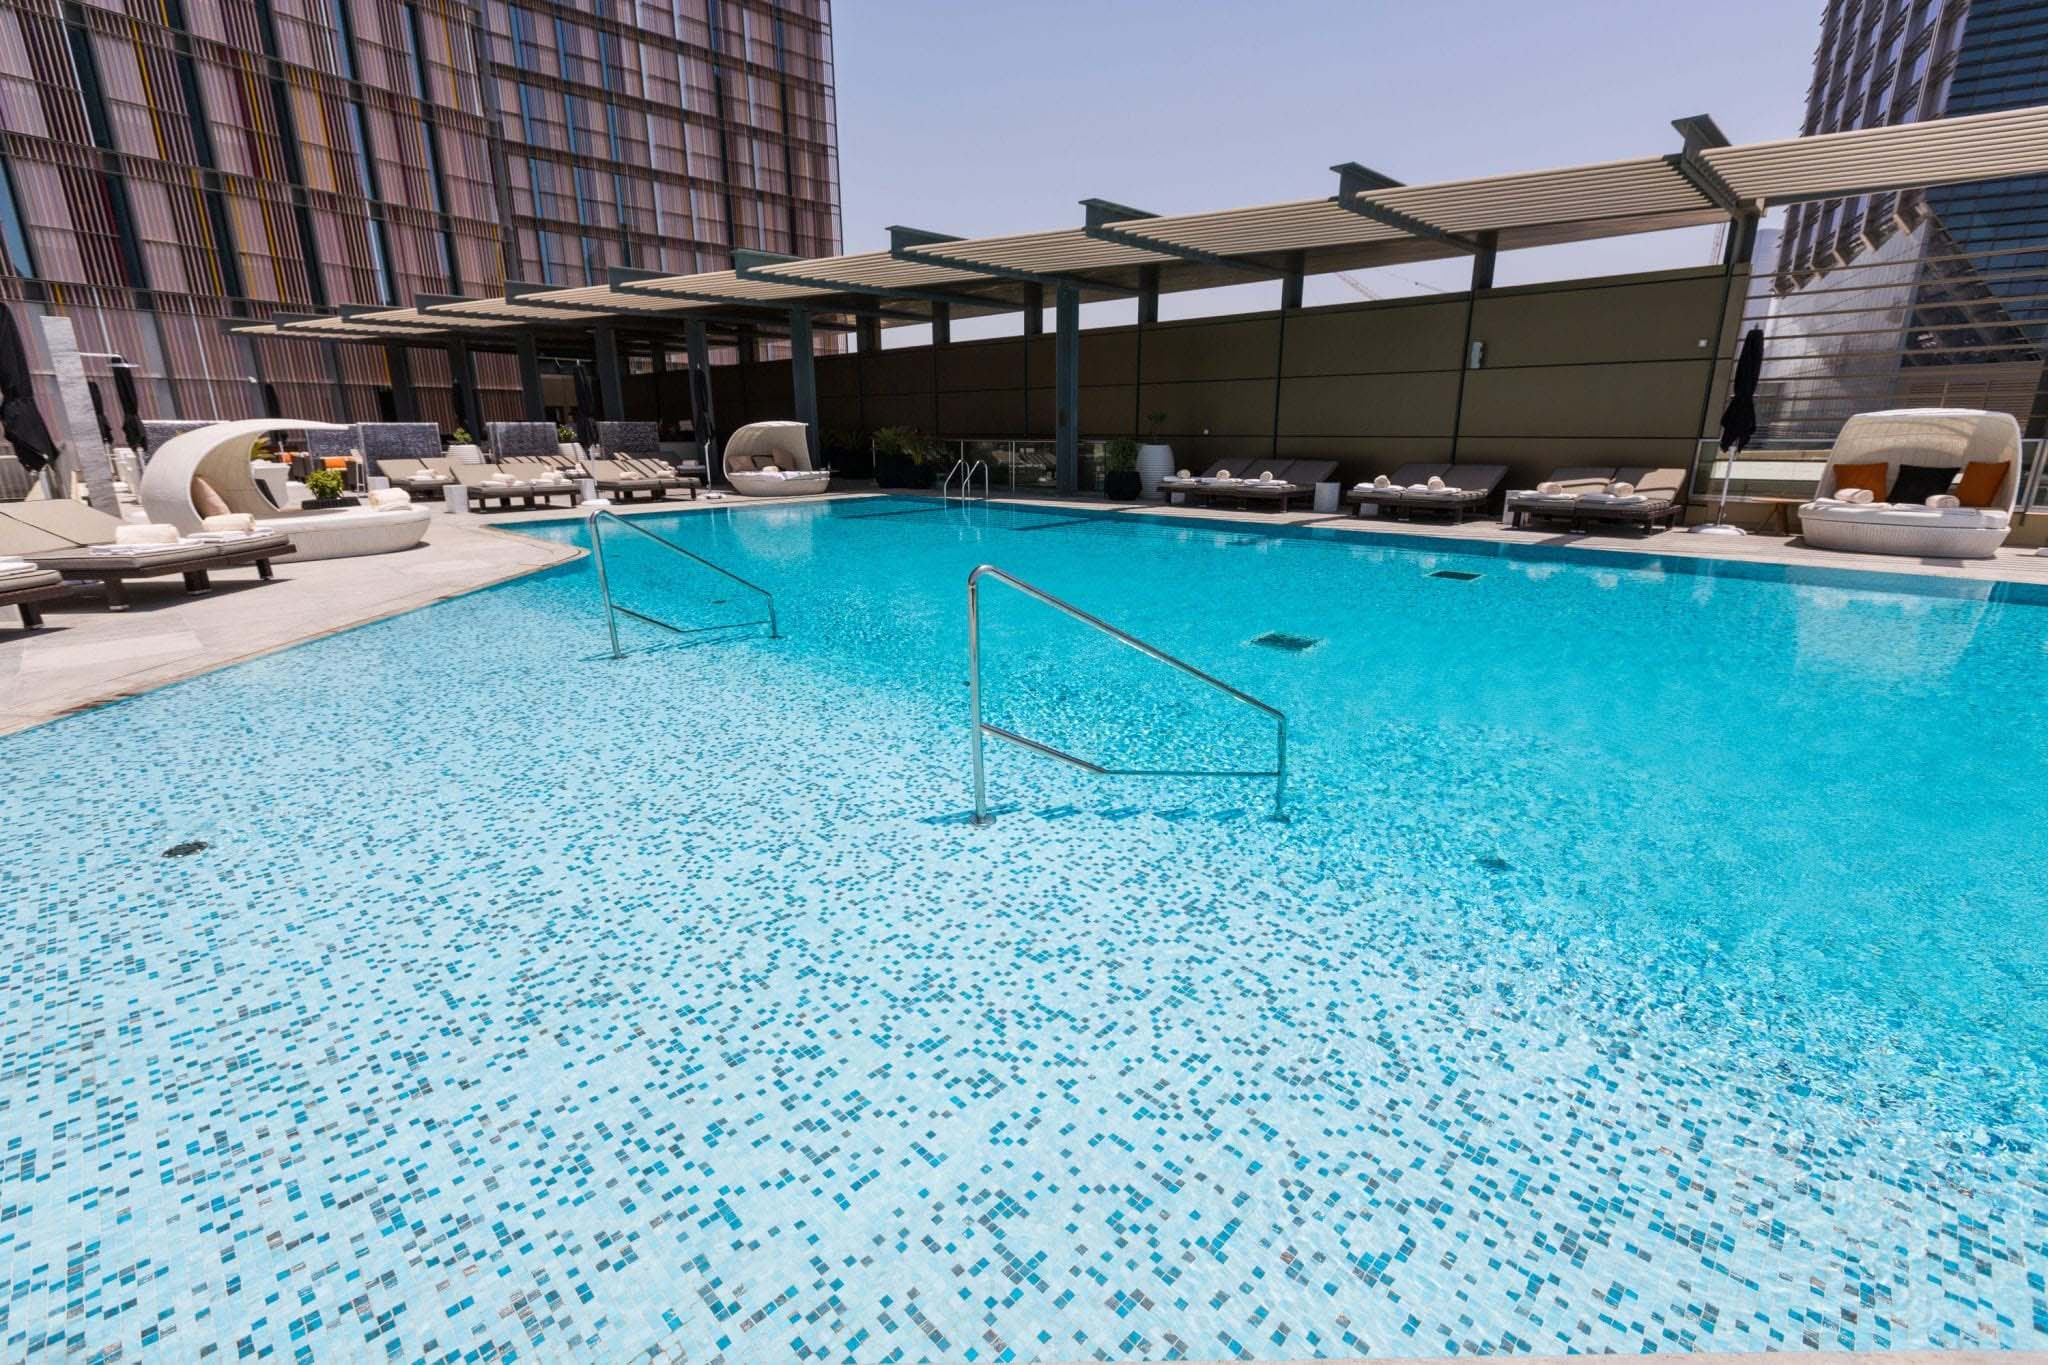 Shading Blends - Four Seasons Hotel, Abu Dhabi, UAE Slider